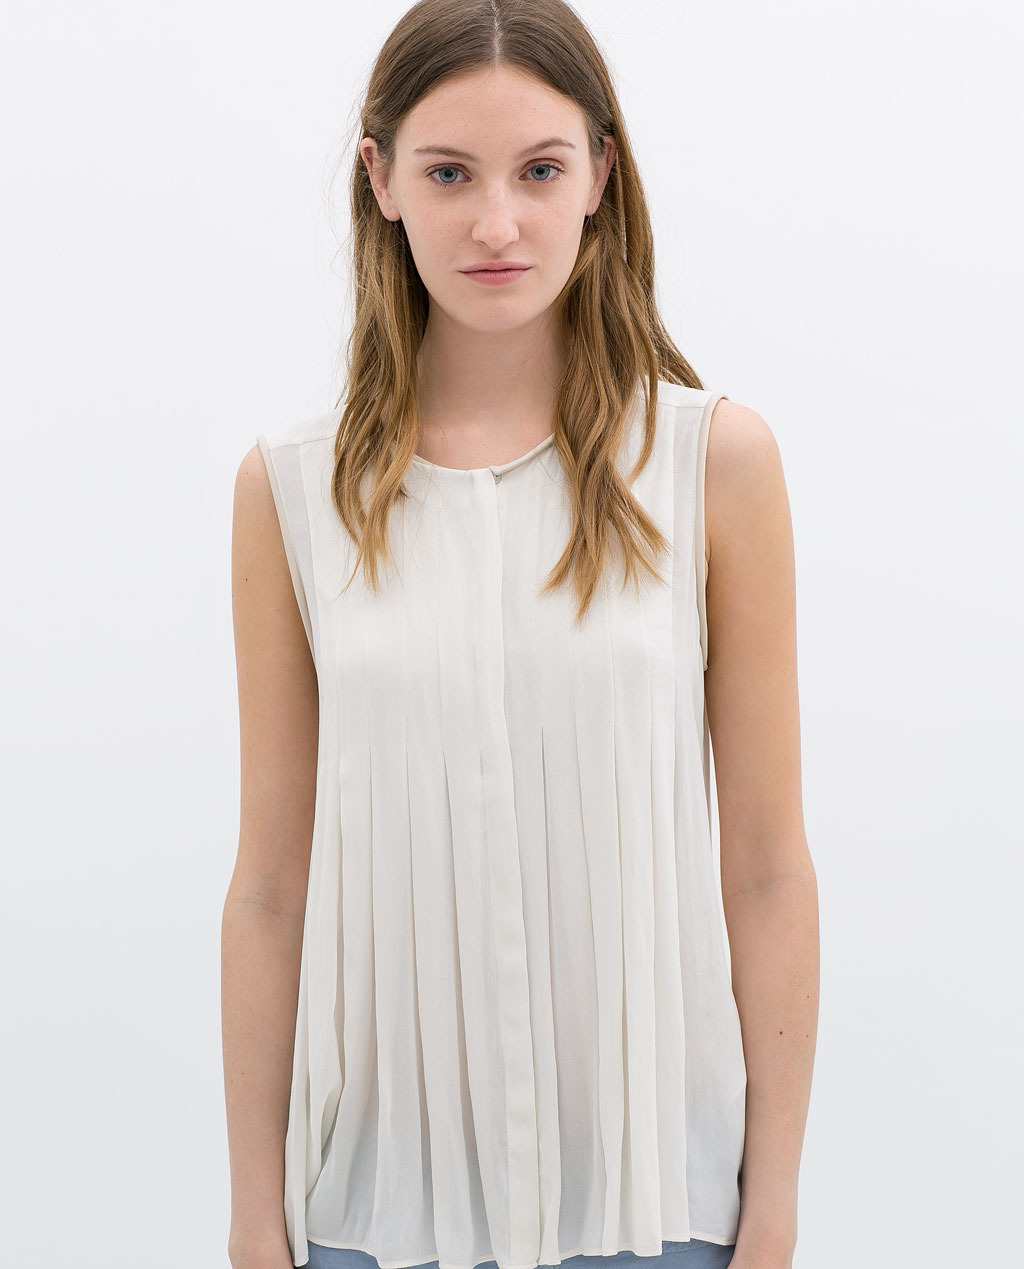 Fine Pleated Top With Faux Leather Piping - neckline: round neck; pattern: plain; sleeve style: sleeveless; style: blouse; waist detail: structured pleats at waist; predominant colour: white; occasions: casual, evening, creative work; length: standard; fibres: polyester/polyamide - 100%; fit: loose; sleeve length: sleeveless; texture group: sheer fabrics/chiffon/organza etc.; pattern type: fabric; season: s/s 2014